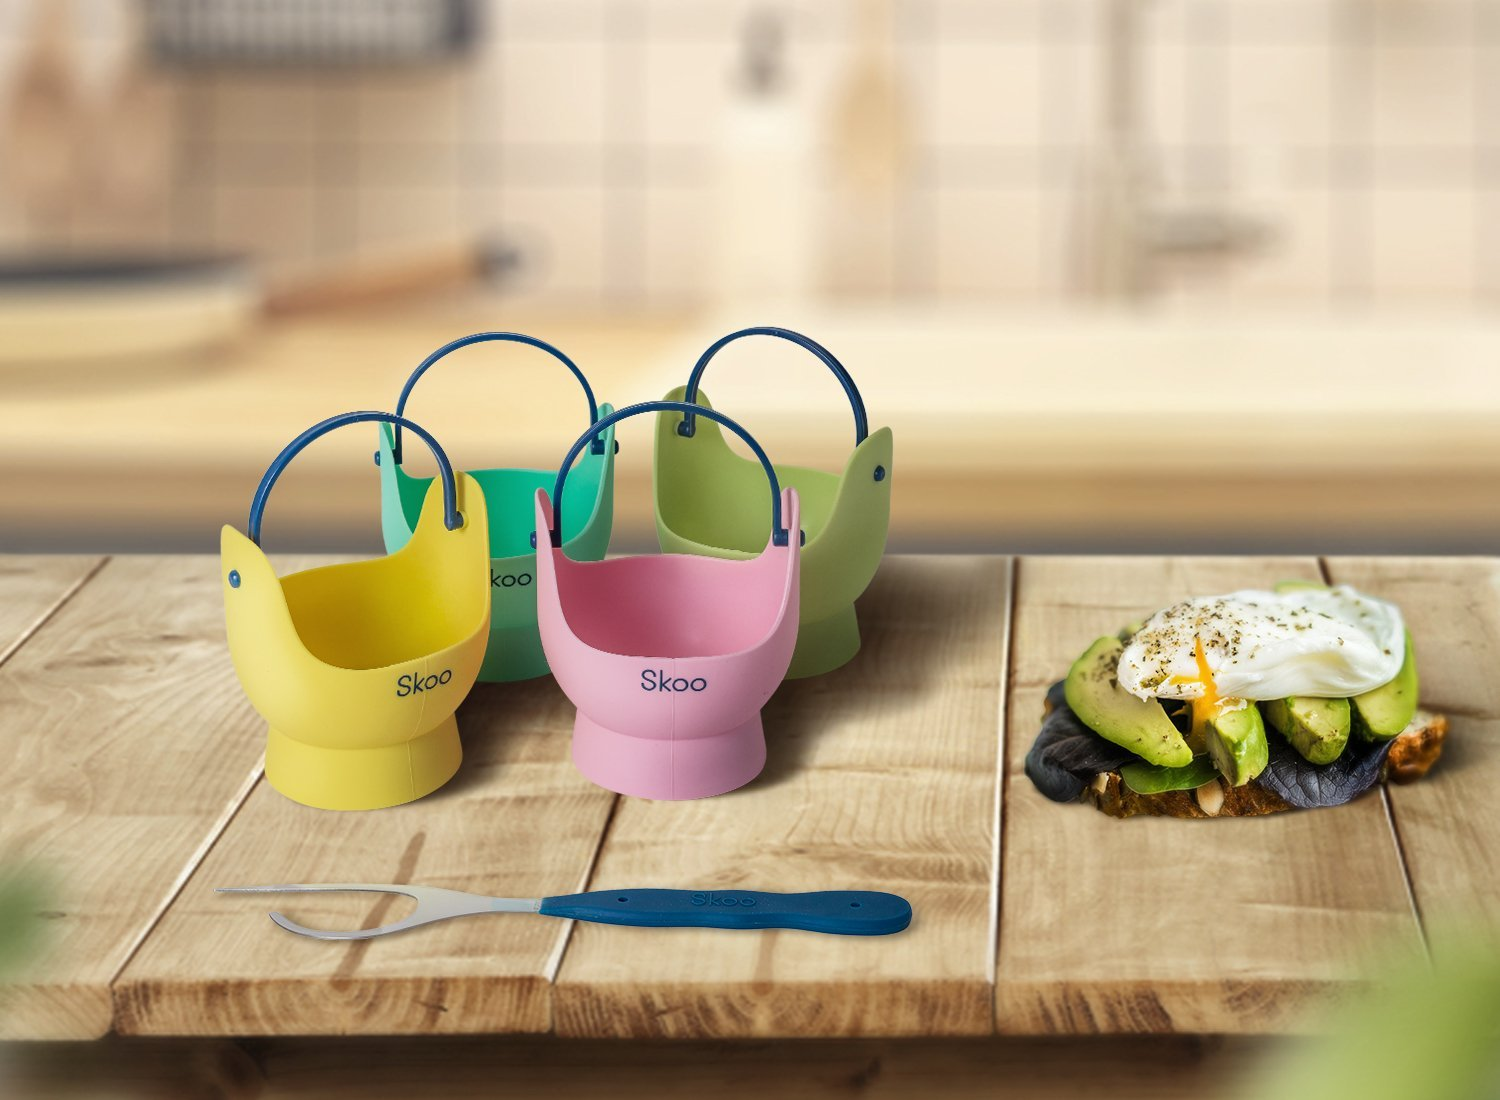 Silicone Egg Poacher Cups + Free Fork - Egg Cooker Set - Perfect Poached Egg Maker - For Stove Top, Microwave and Instant Pot by Skoo (Image #6)